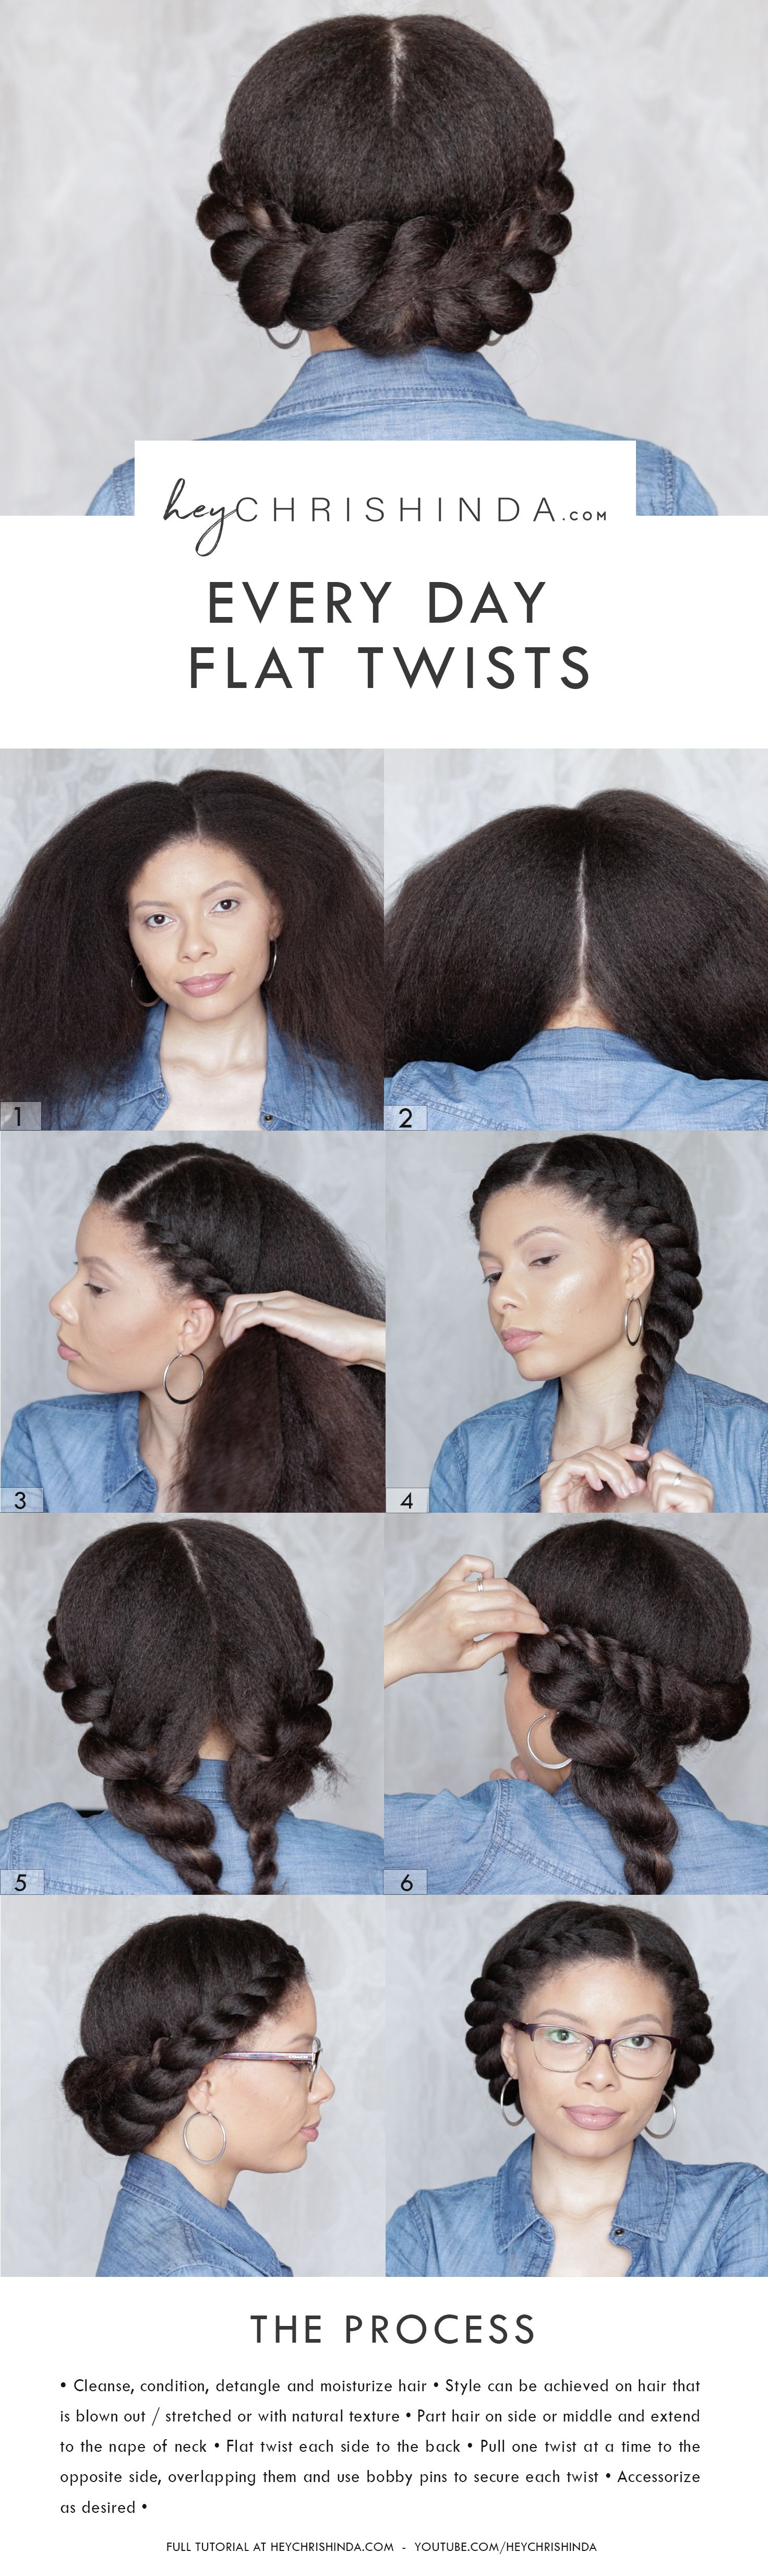 Super Easy Every Day Flat Twist Natural Hair Style Hey Chrishinda Natural Hair Styles Easy Flat Twist Hairstyles Natural Hair Styles